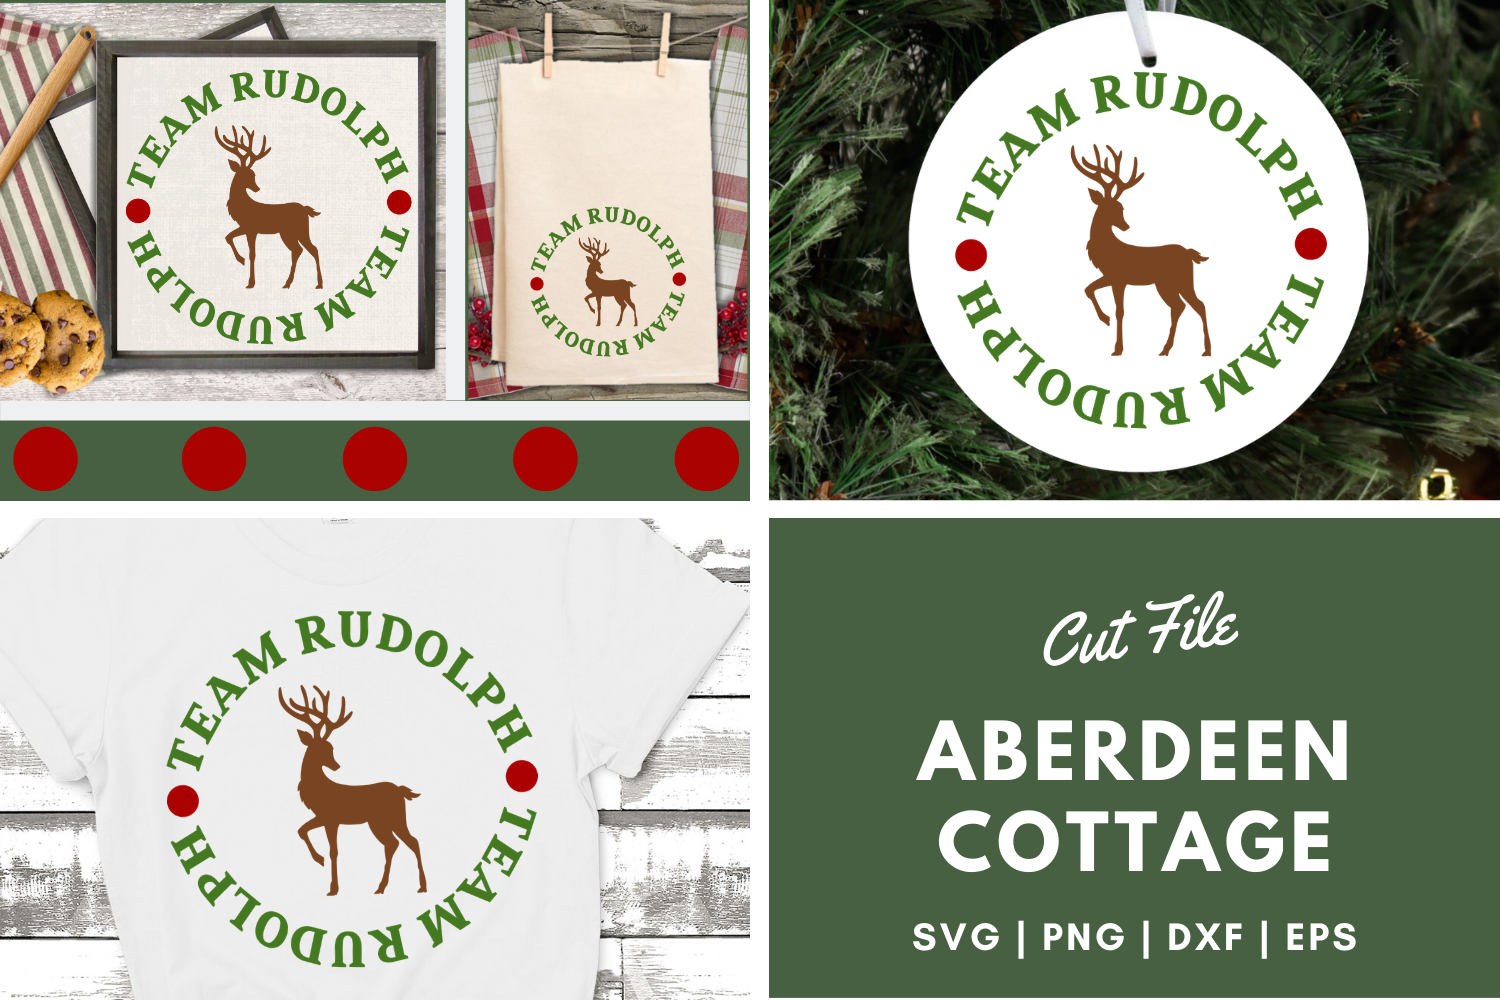 Download Free Team Rudolph Svg Png Dxf Eps Graphic By Aberdeencottage for Cricut Explore, Silhouette and other cutting machines.